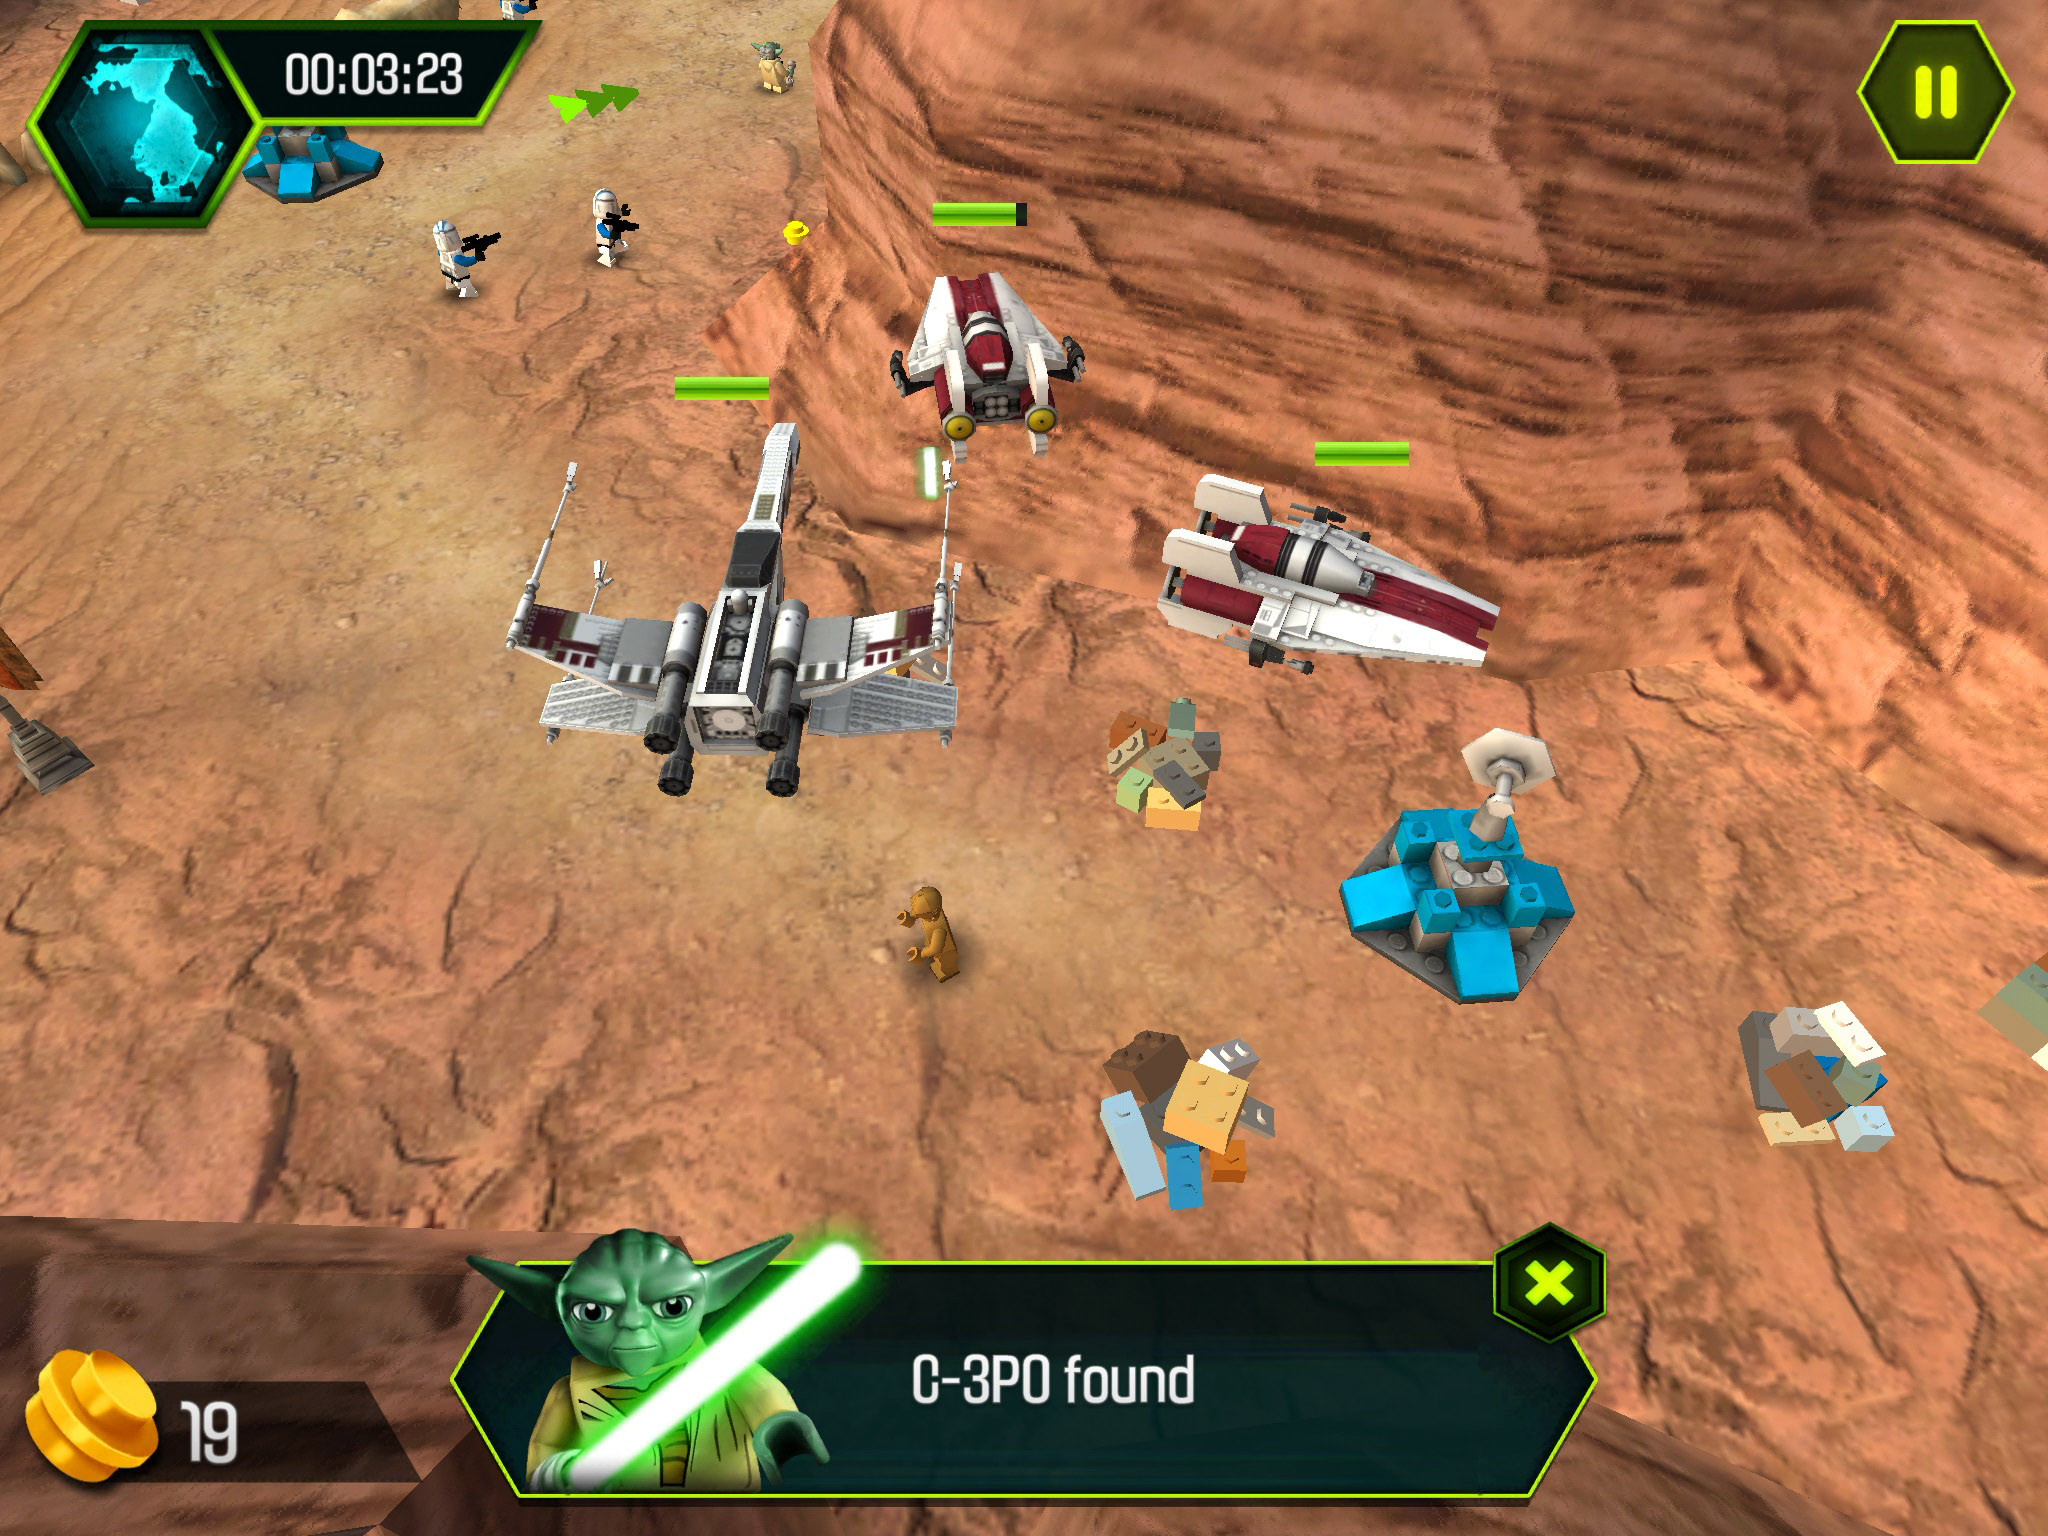 LEGO Star Wars - The Yoda Chronicles - download.cnet.com